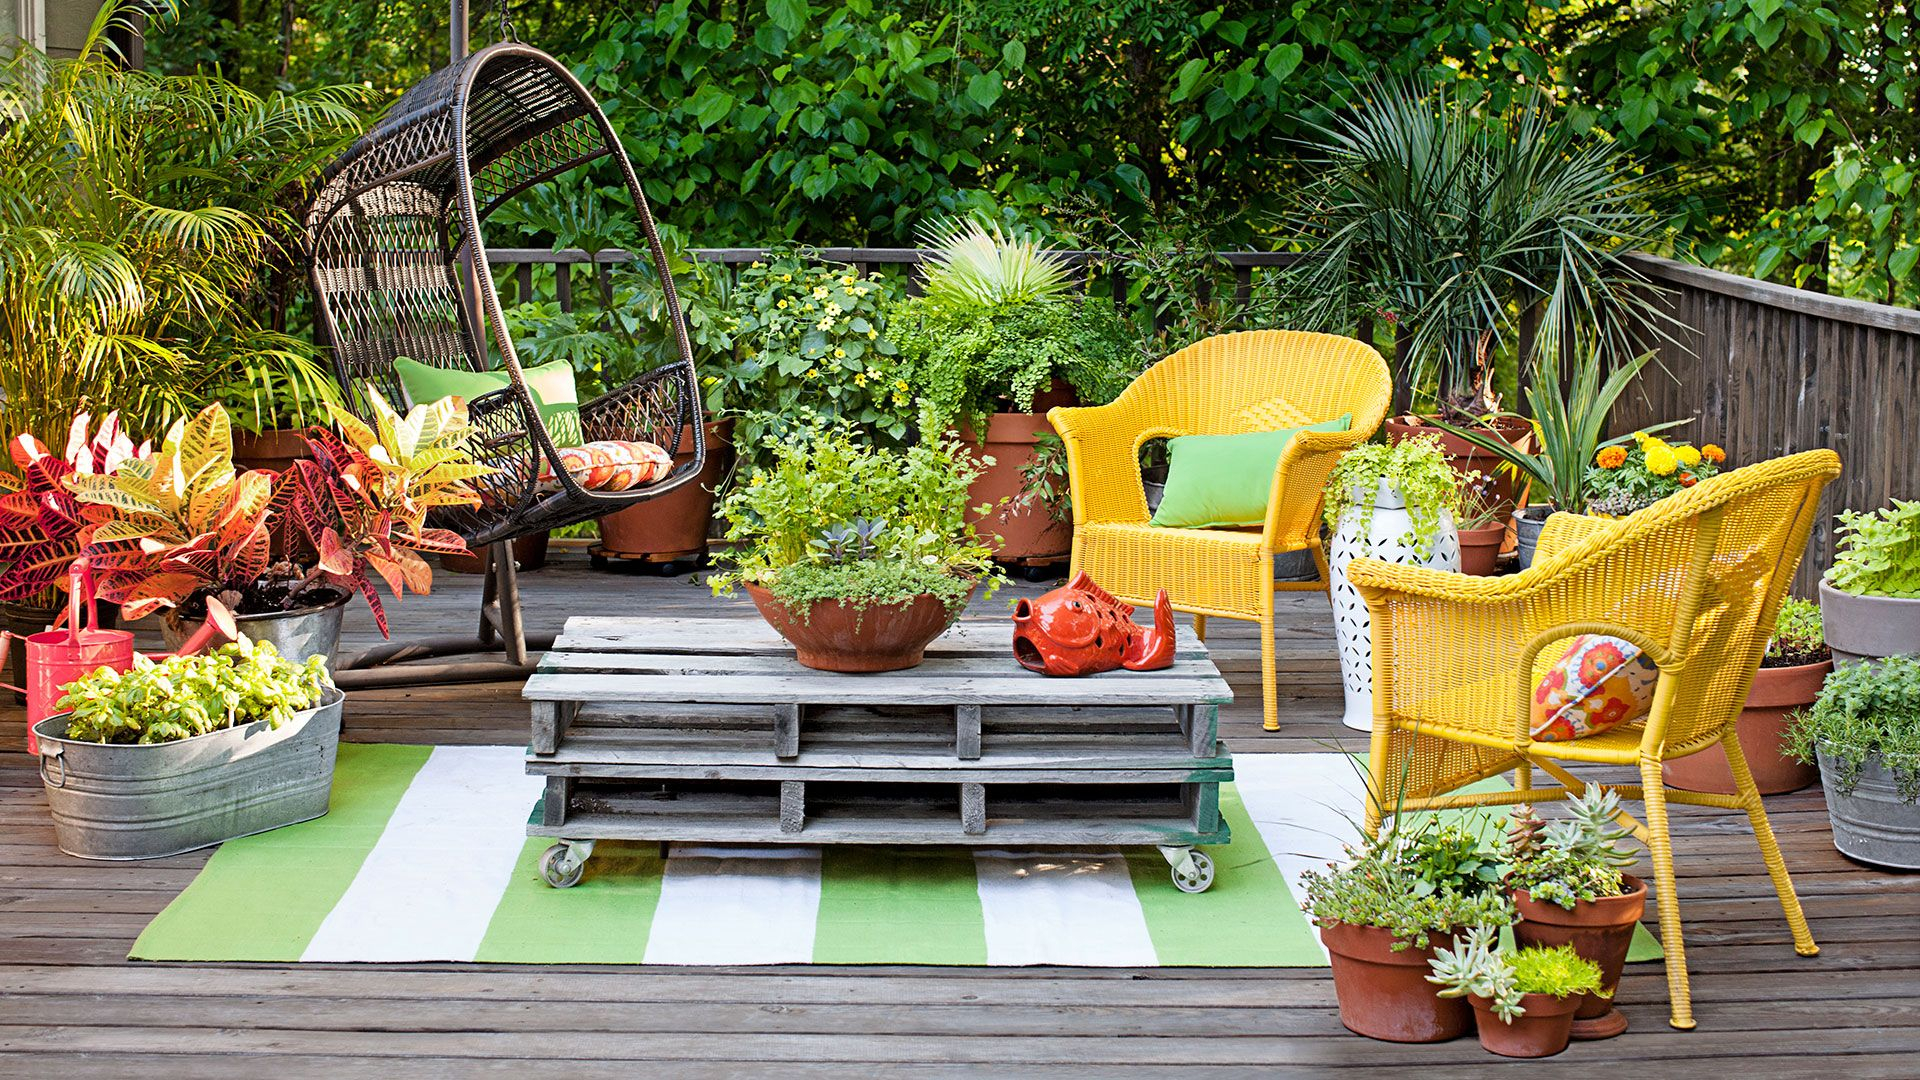 29 Backyard Decorating Ideas Easy Gardening Tips And Diy Projects with Decorating Ideas For Backyard